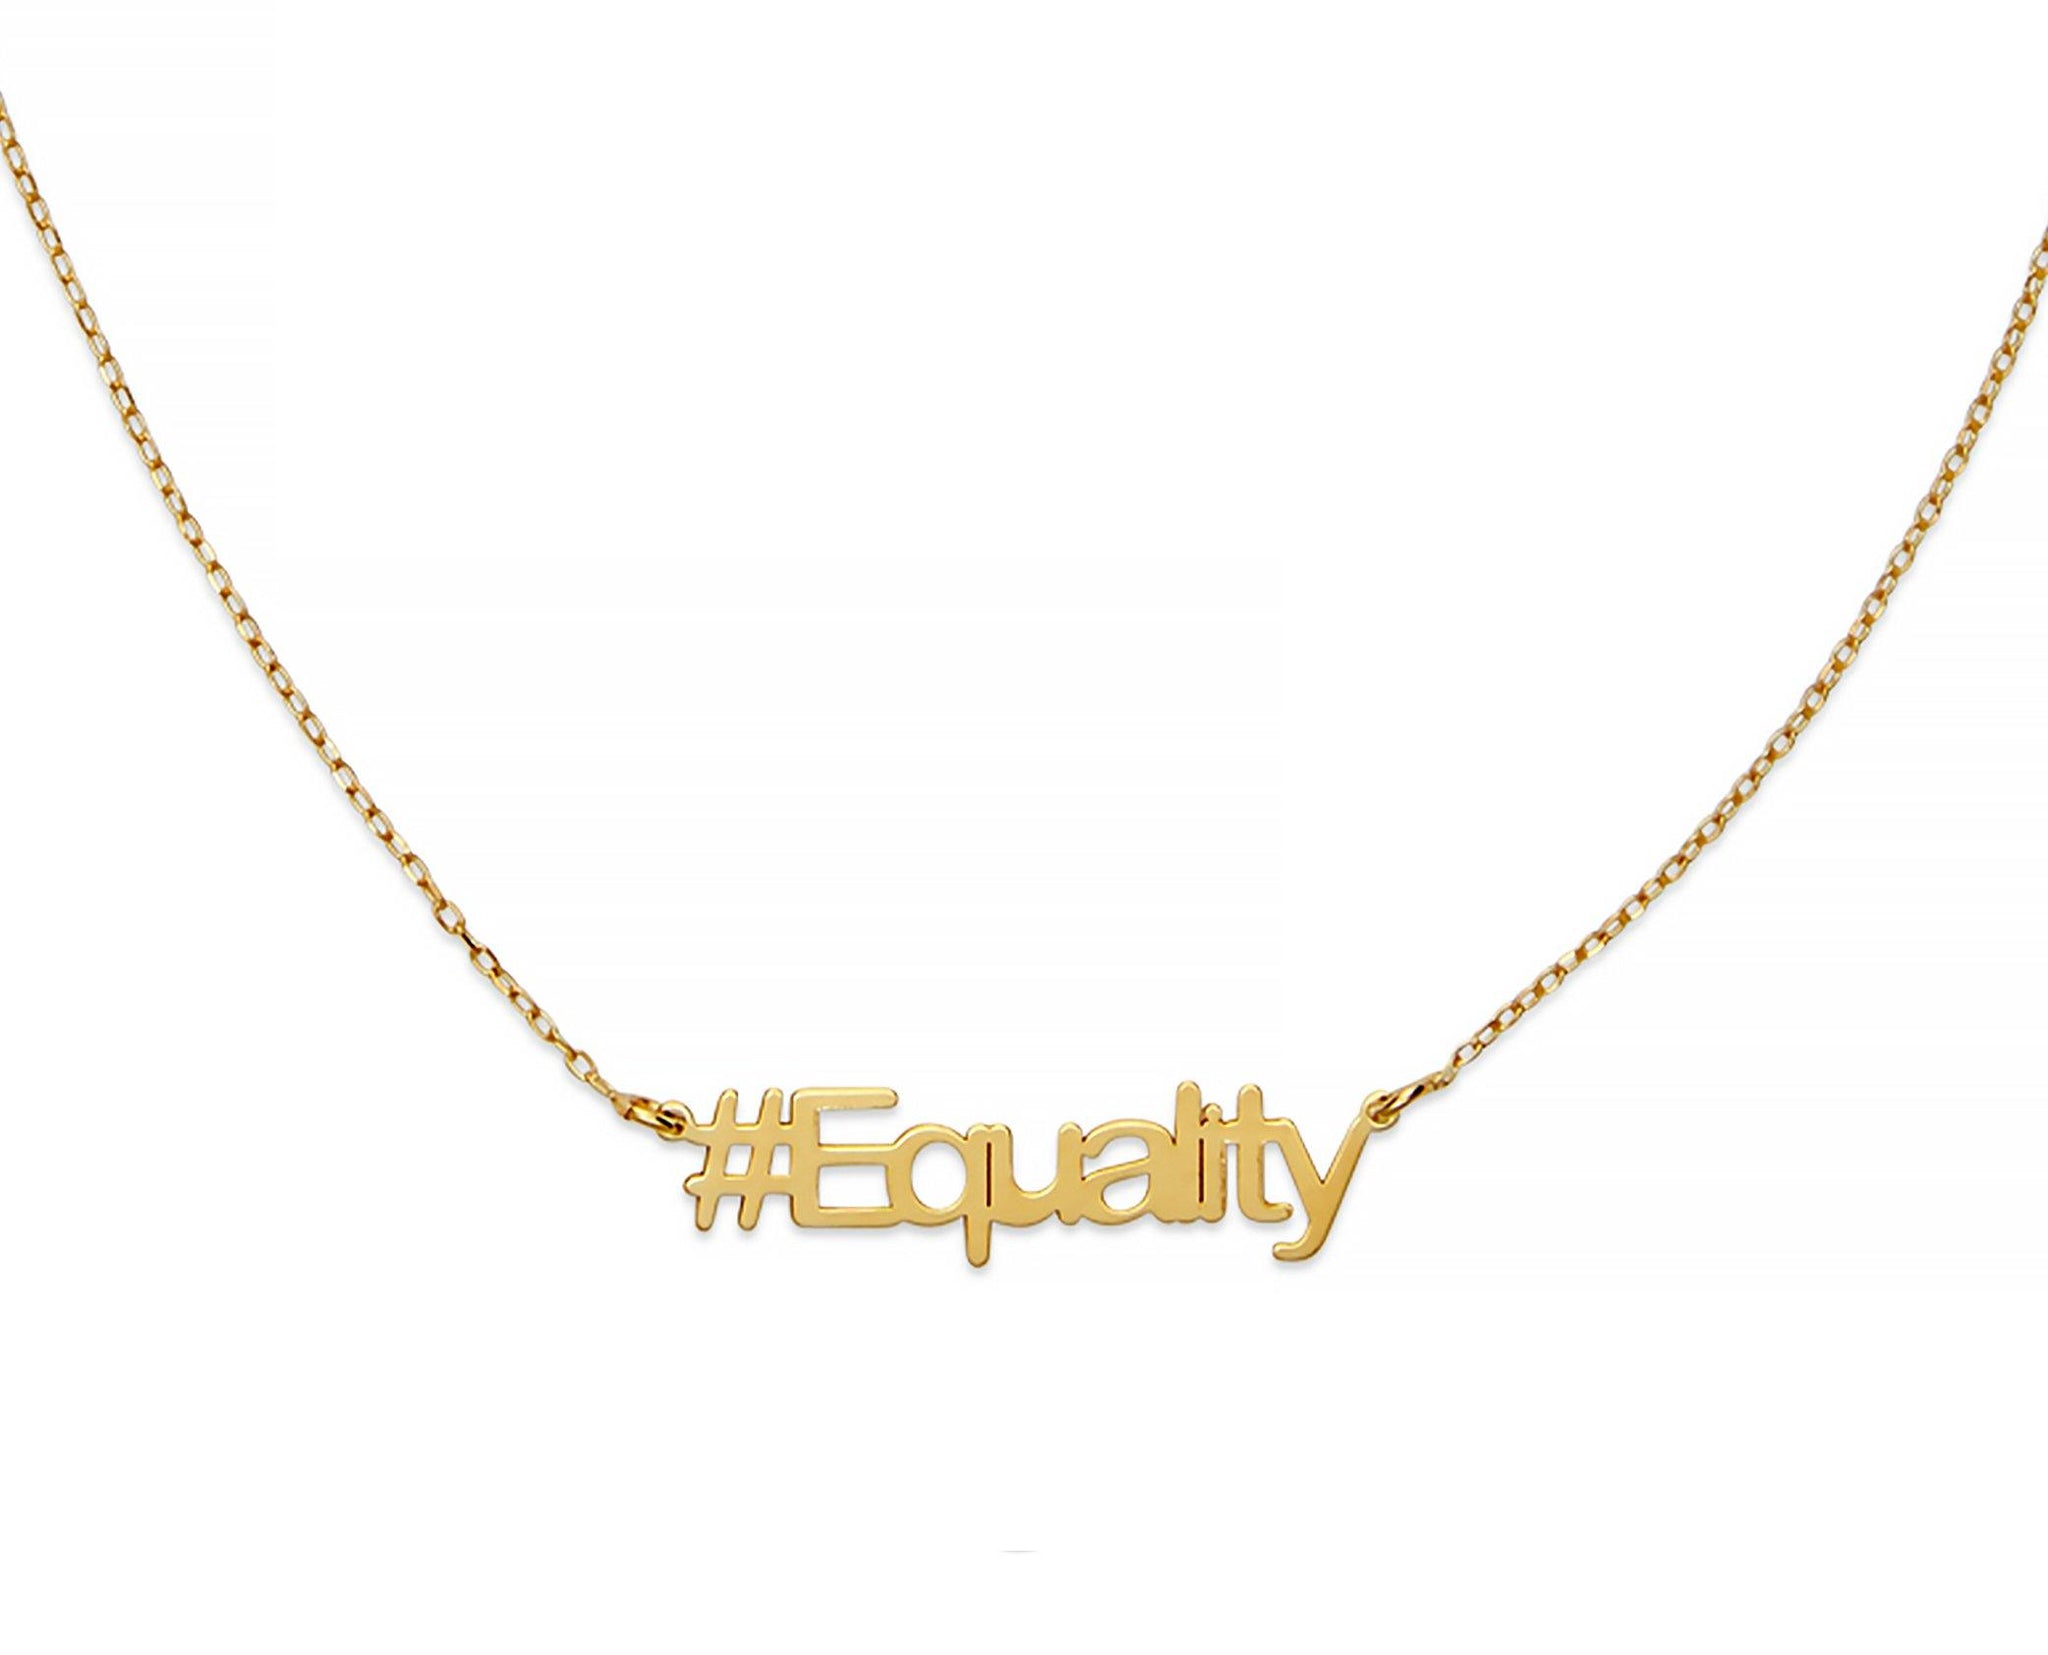 Equality Hashtag Necklace - InclusiveJewelry